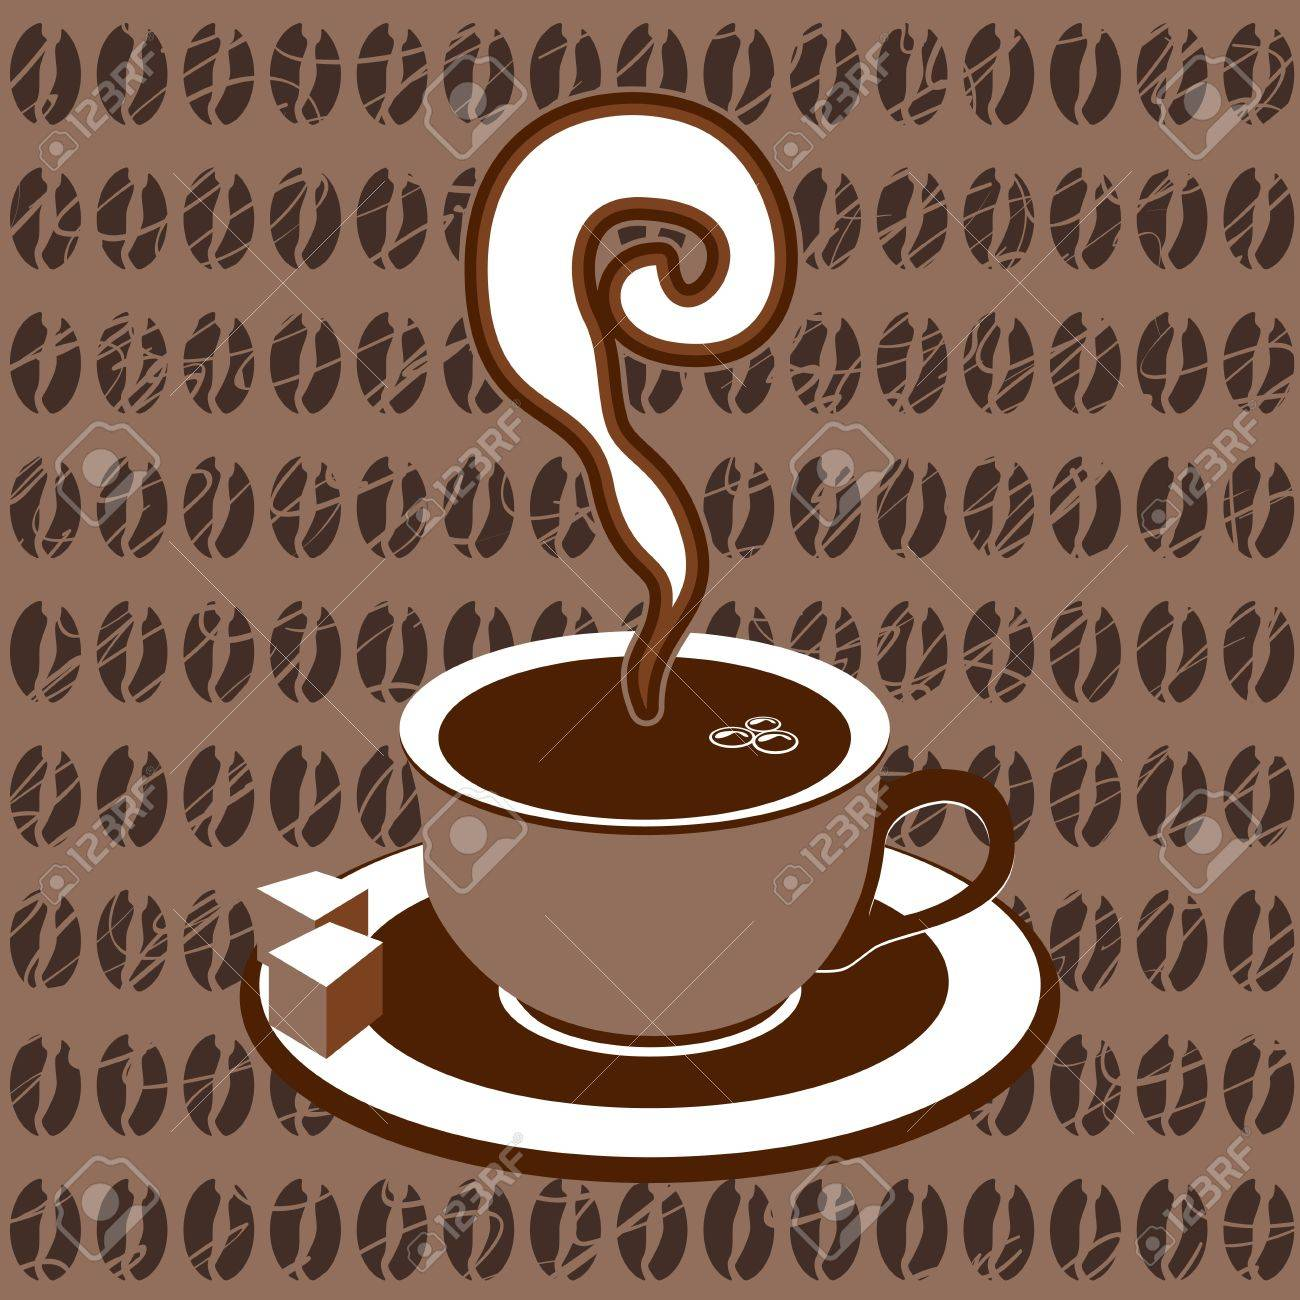 Coffee cup on plate icon, vector illustration Stock Vector - 15497471